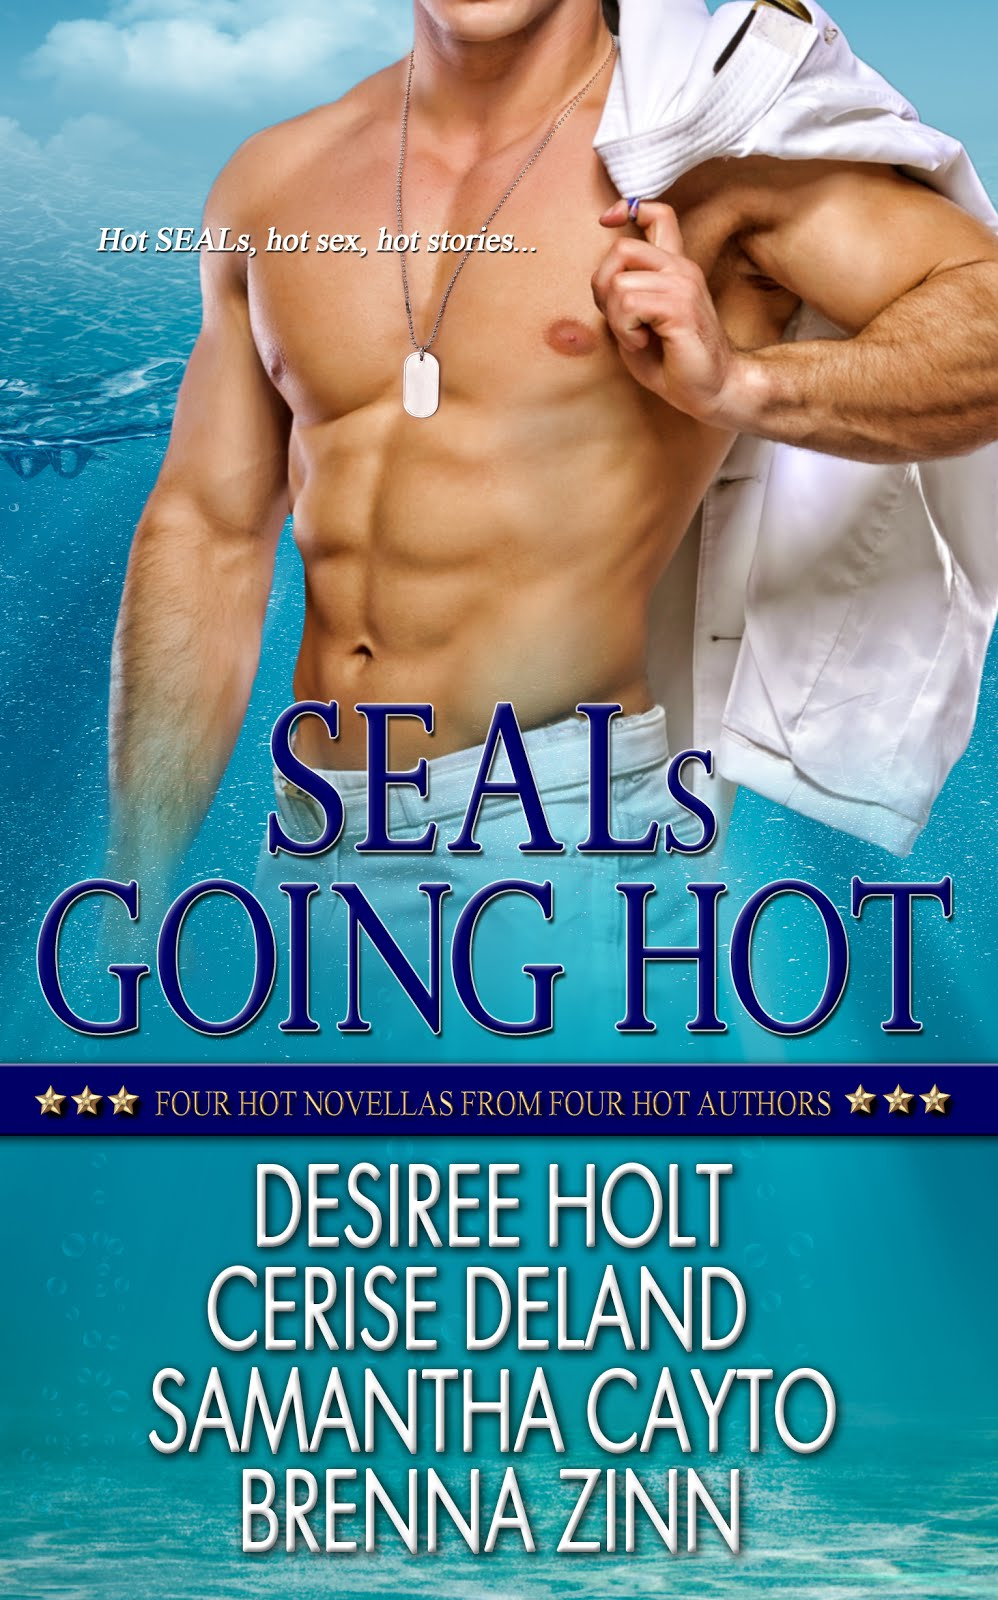 SEALs GOING HOT